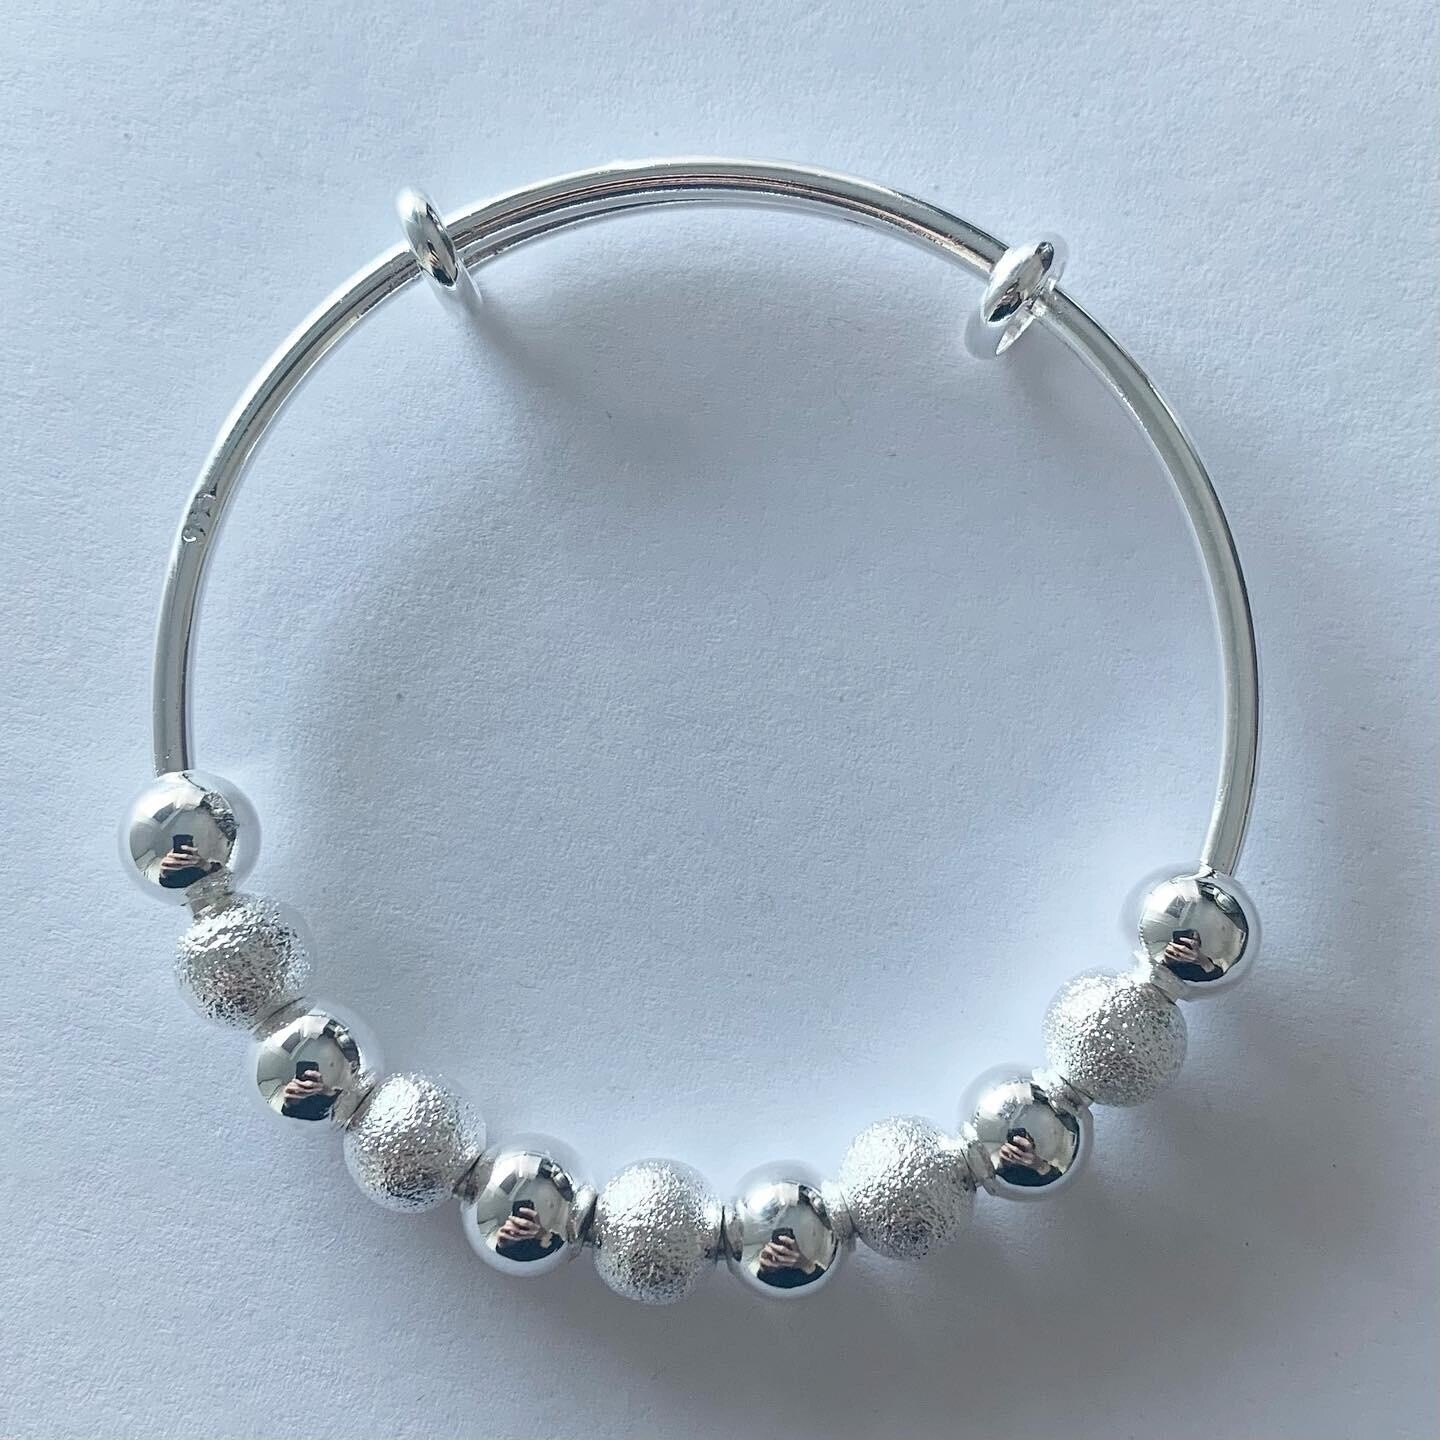 Beads armband 925 sterling zilver